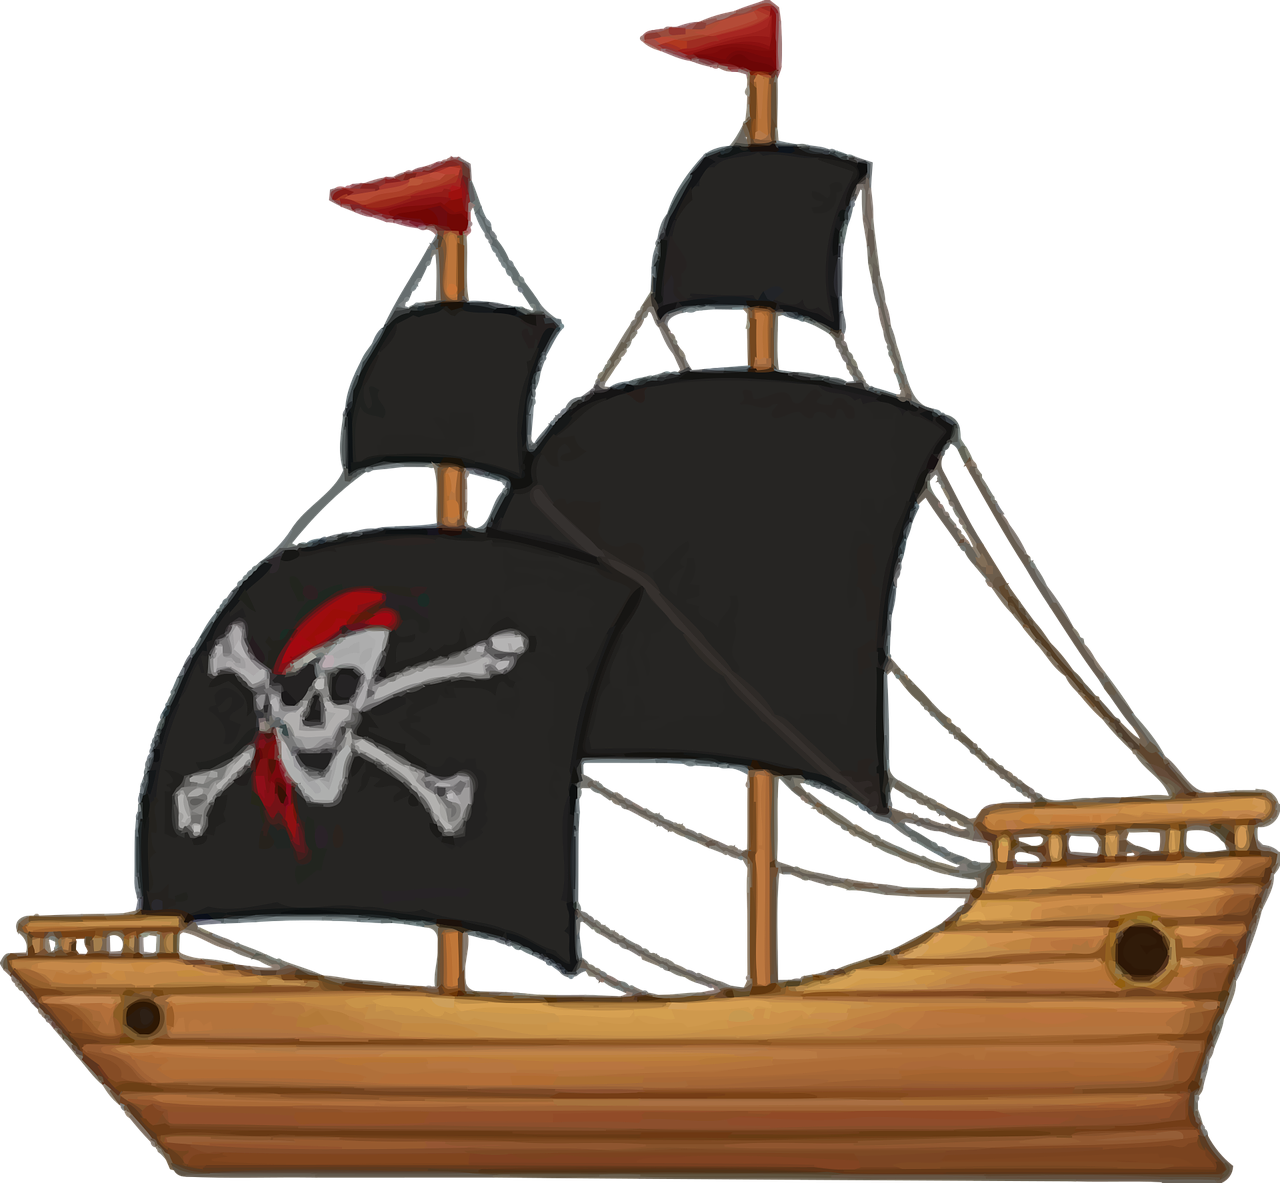 Pirate ship with skull of sail